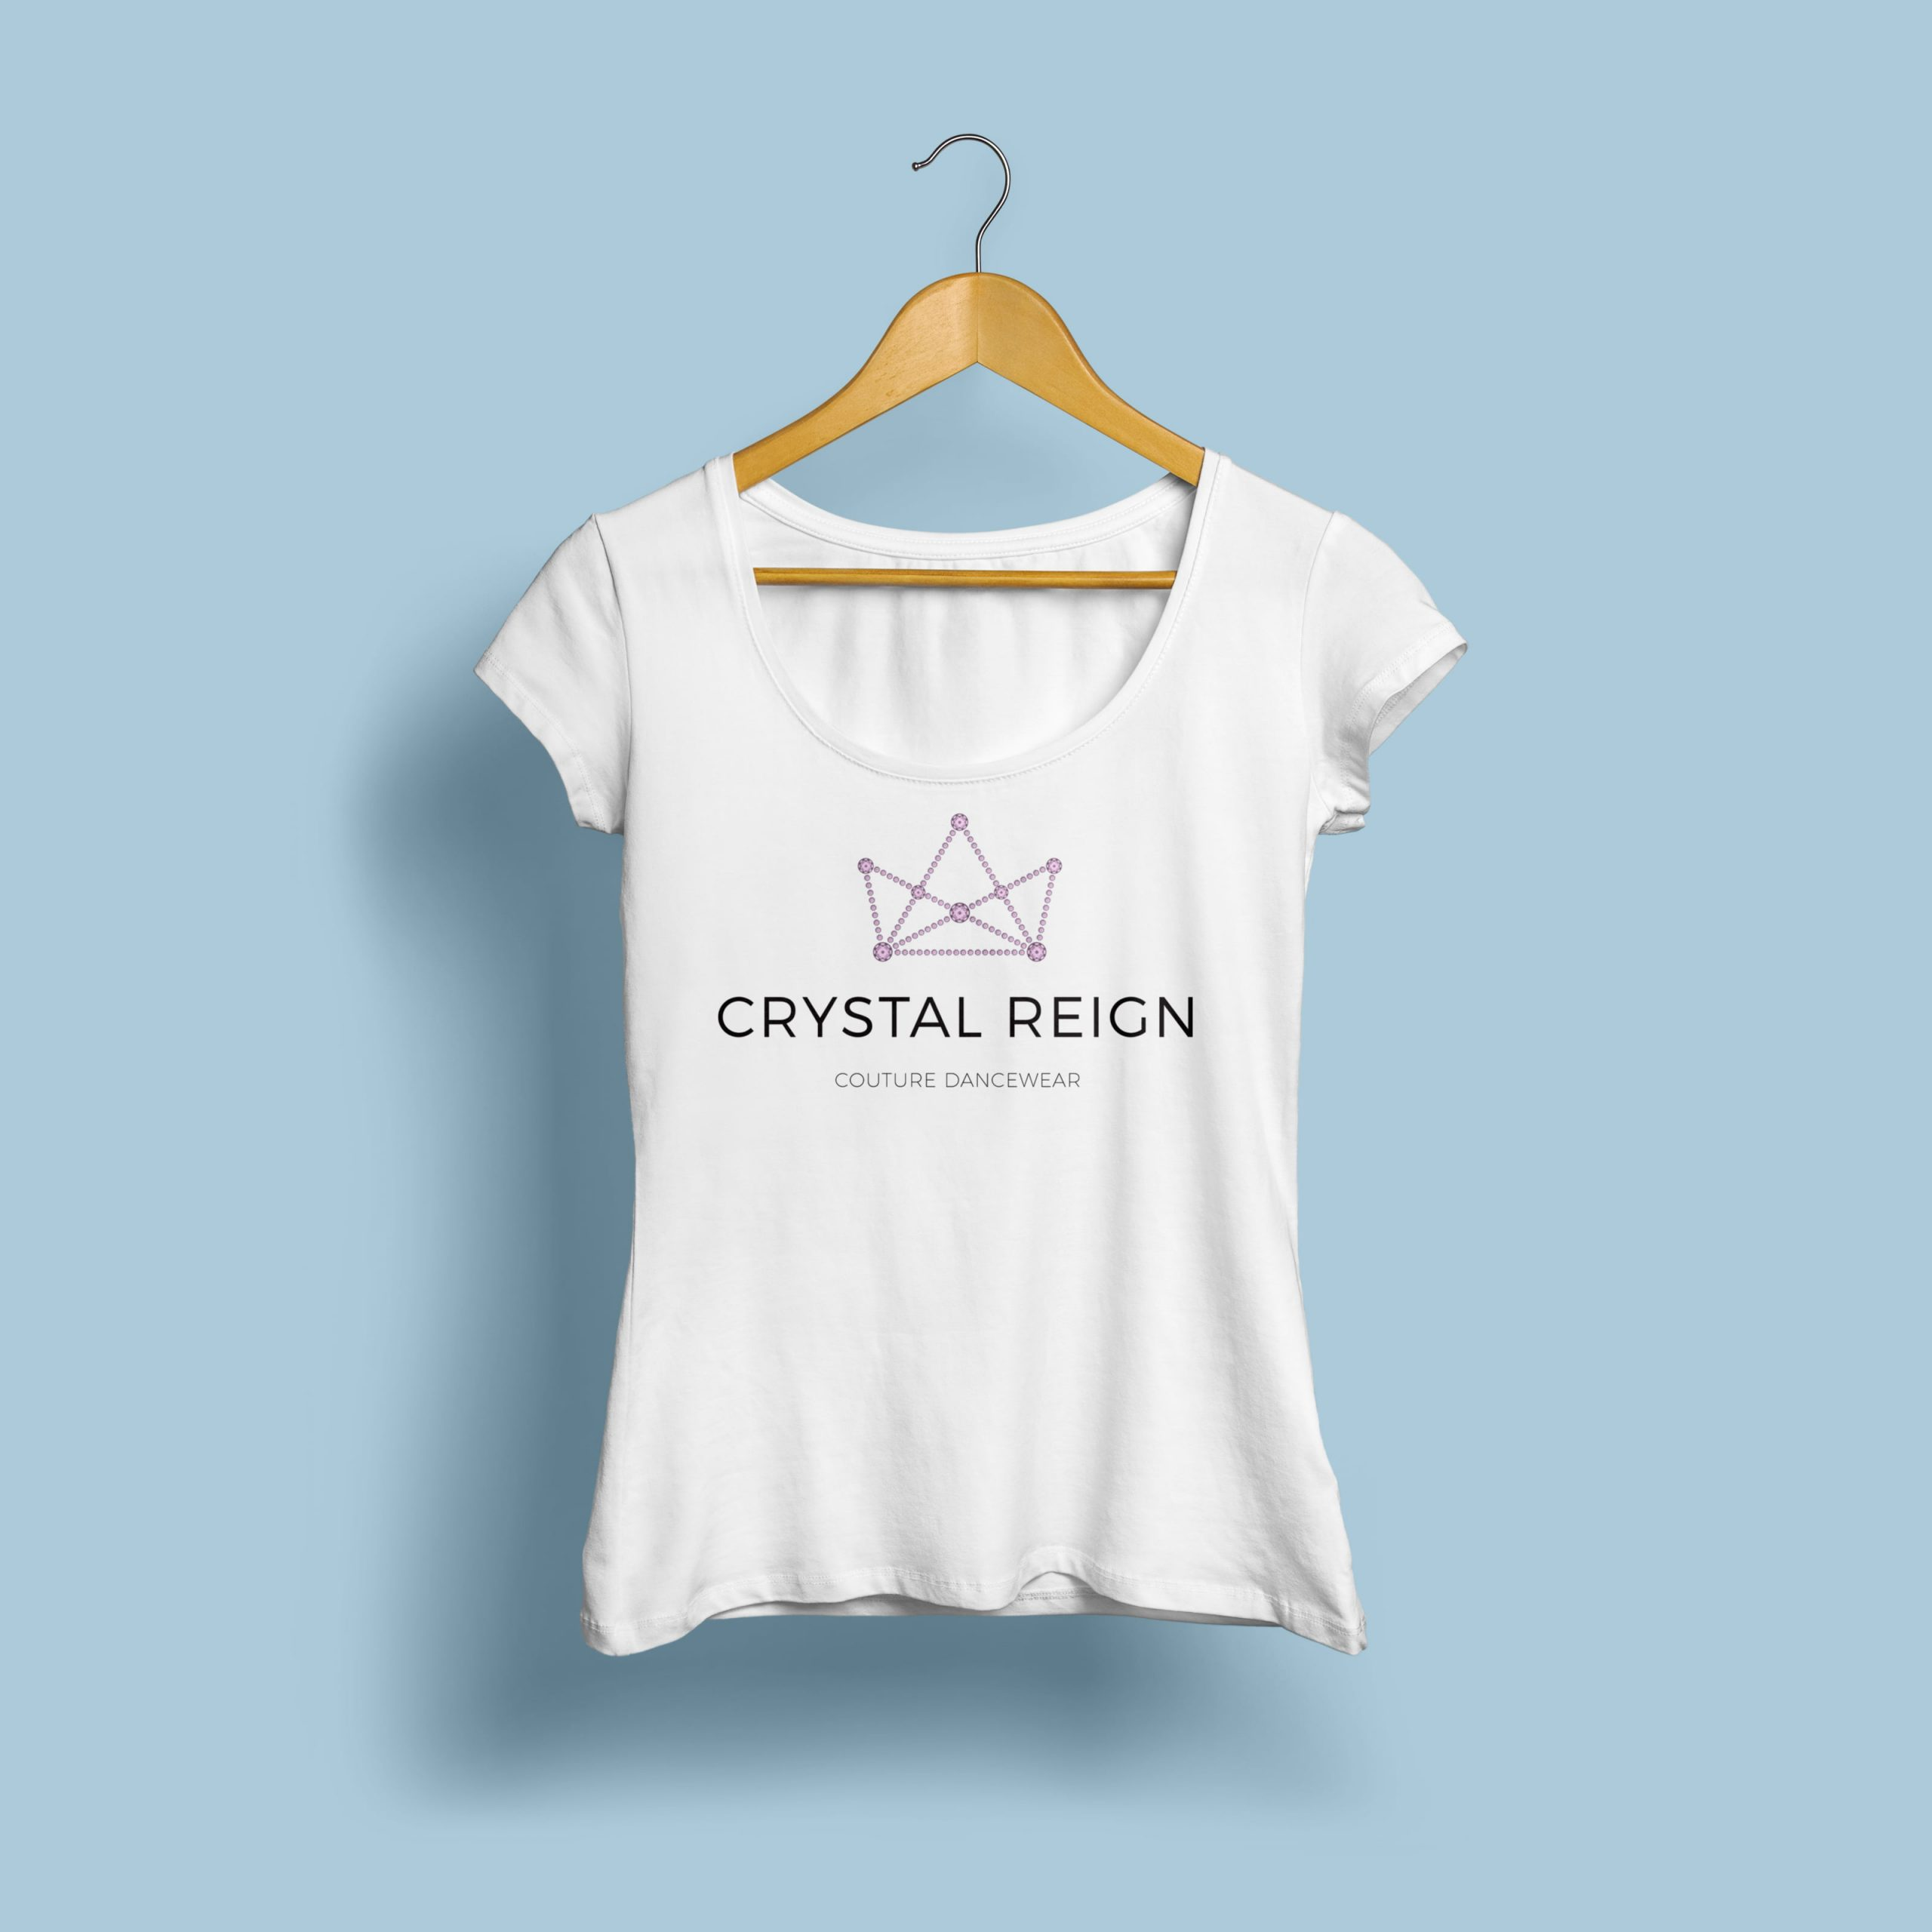 Crystal Reign logo printed on a T-shirt